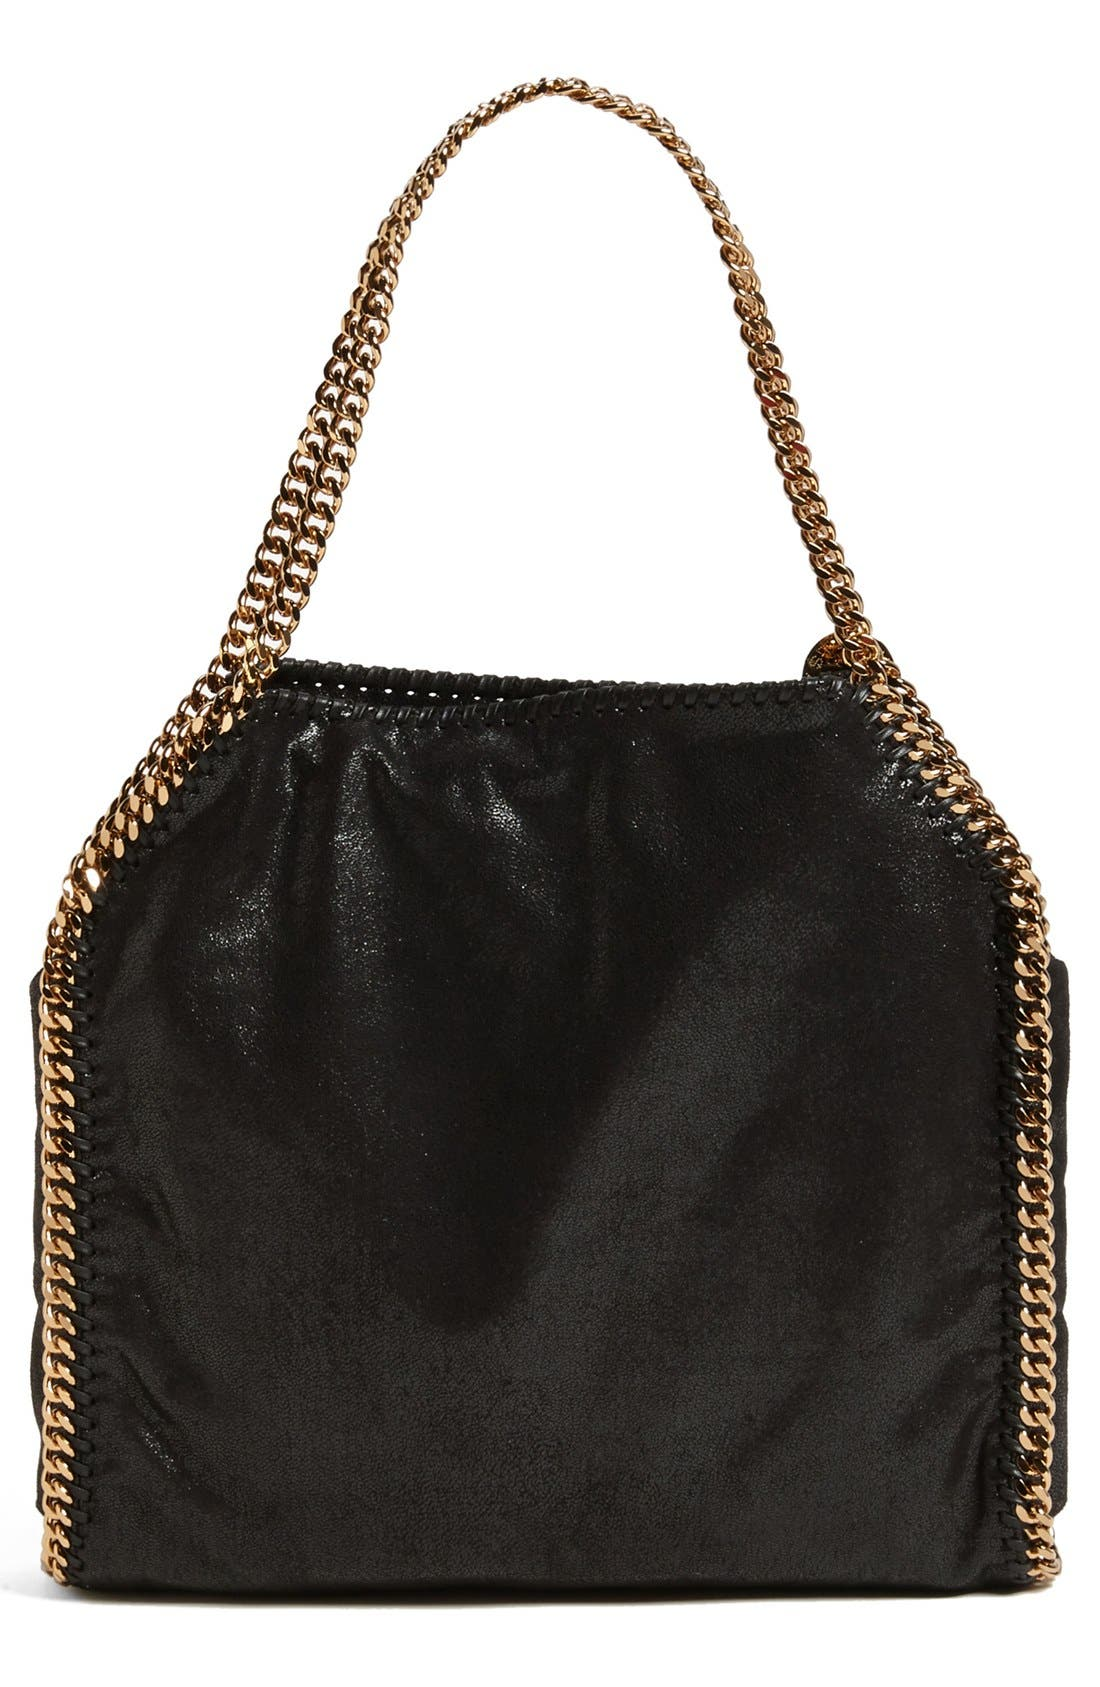 'Small Falabella - Shaggy Deer' Faux Leather Tote,                             Alternate thumbnail 3, color,                             Black